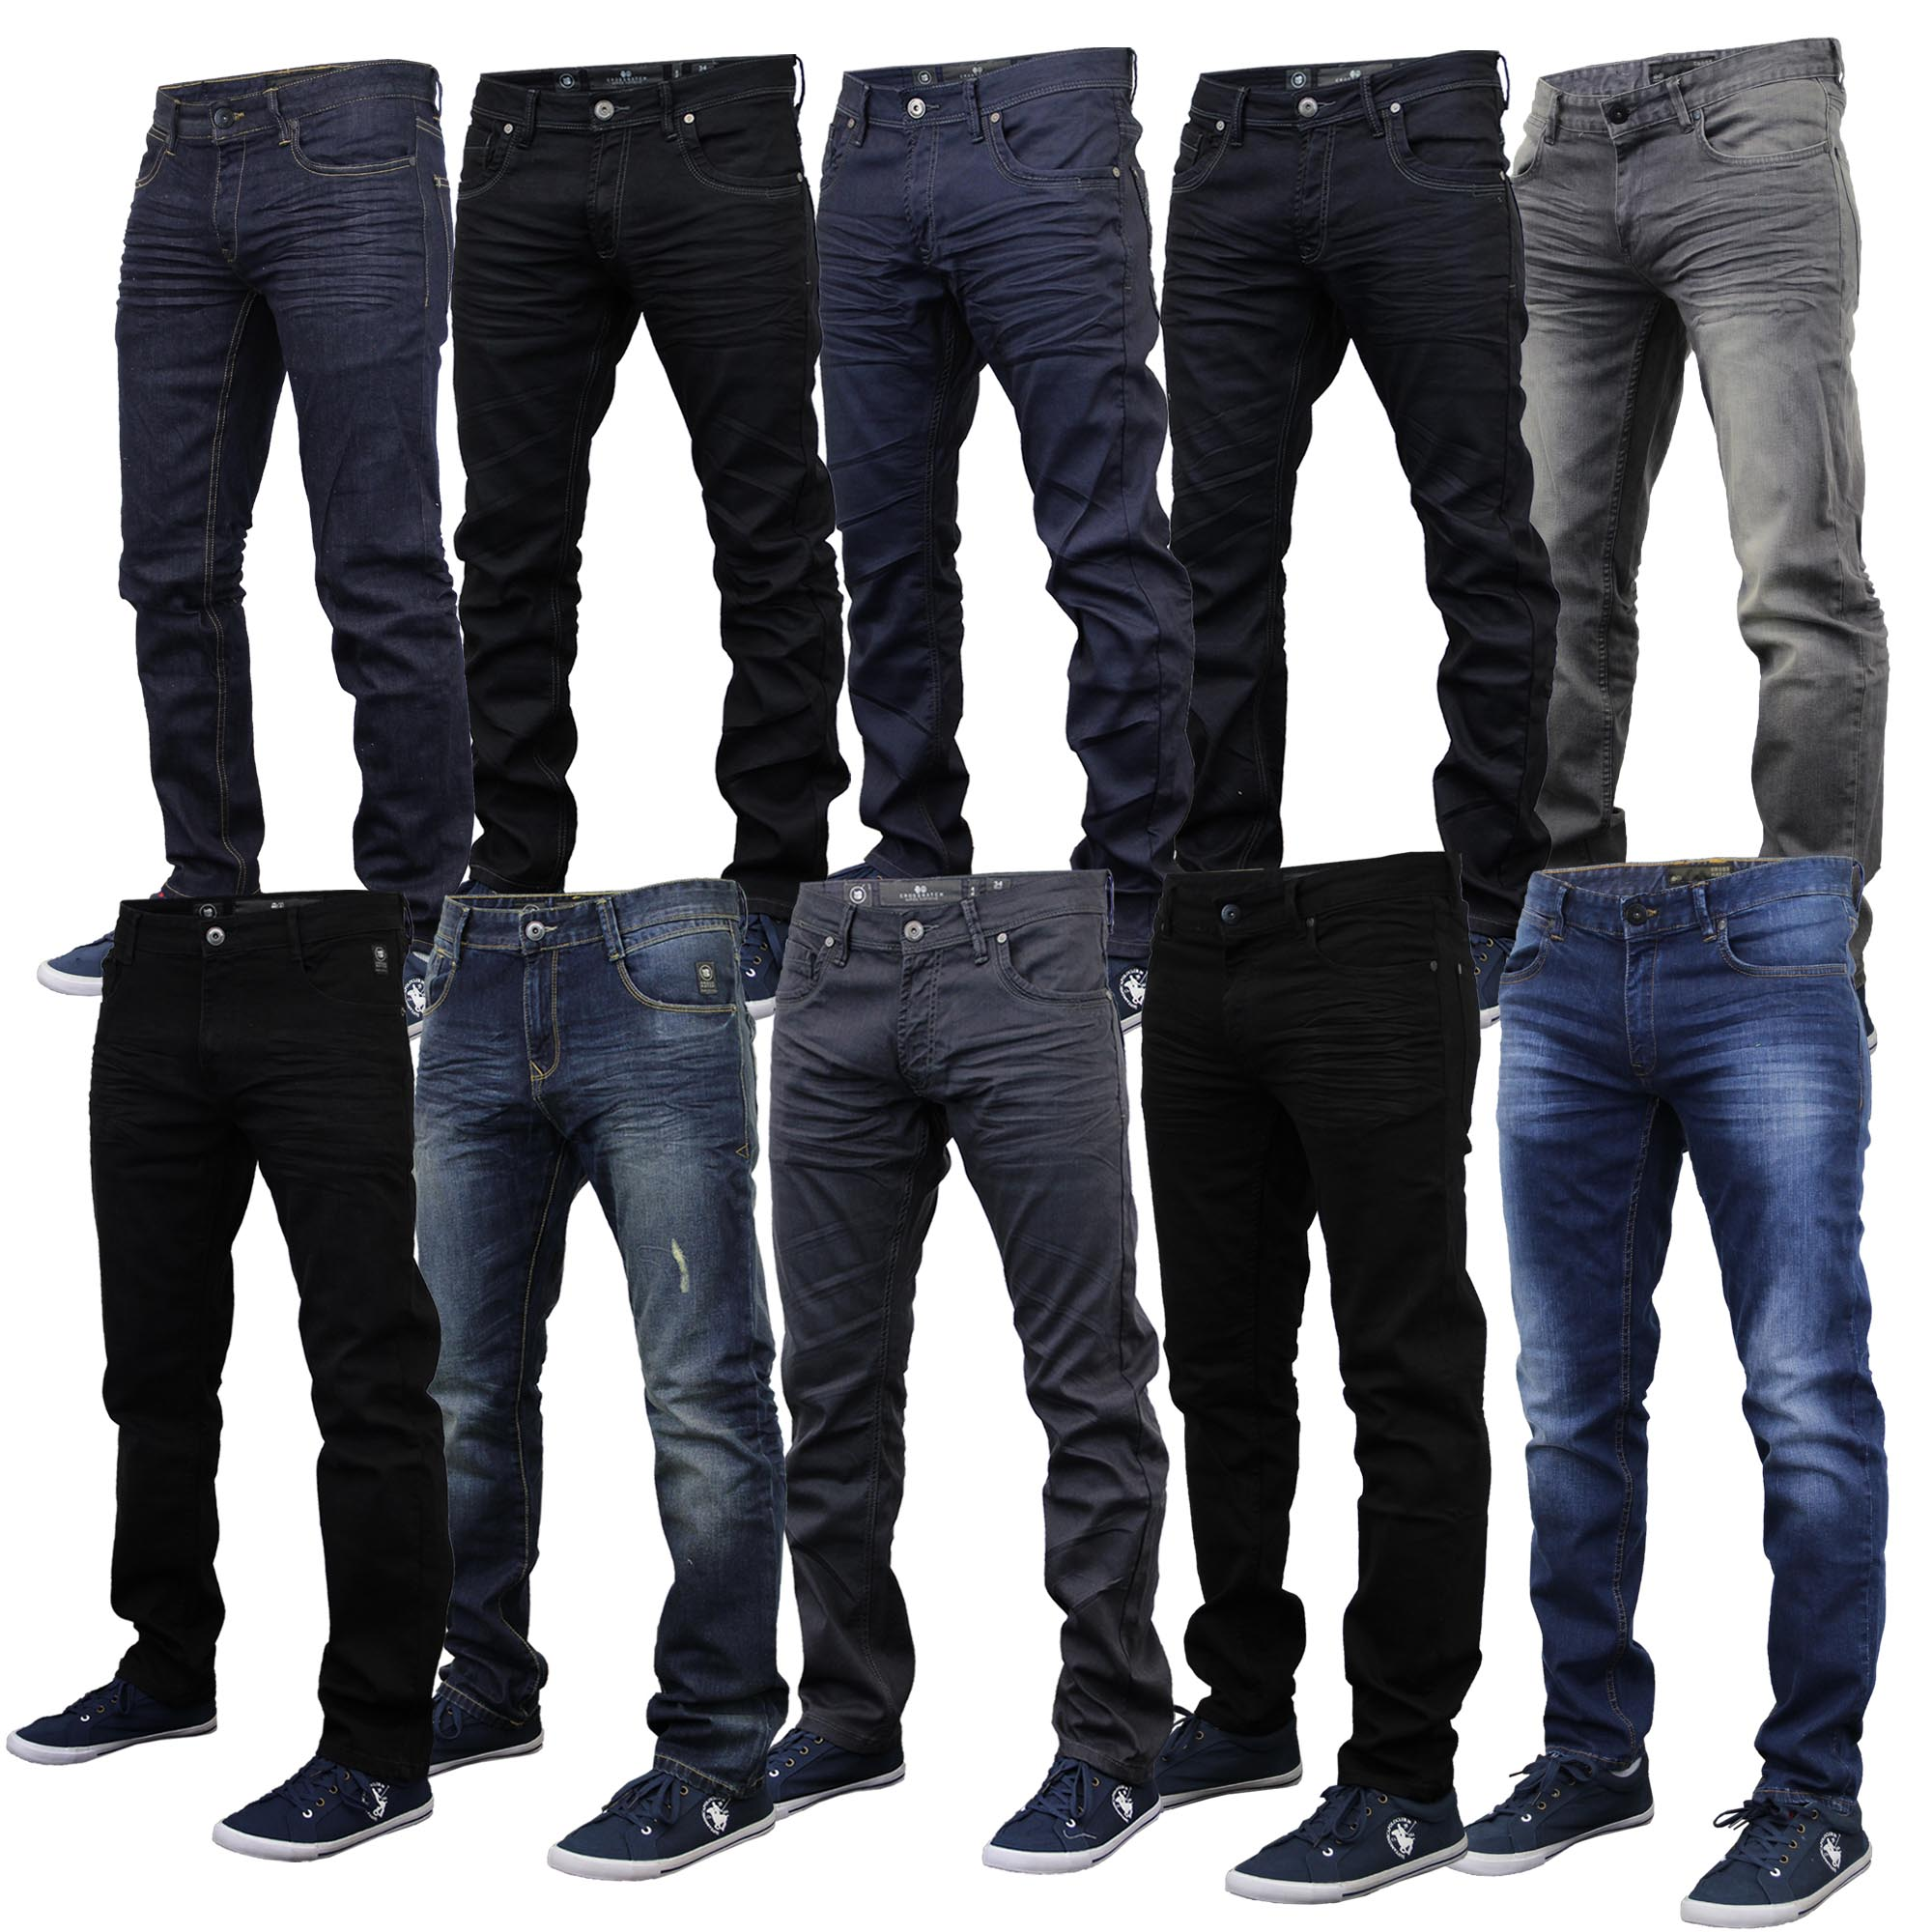 Mens Denim Jeans Crosshatch Pants Slim Fit Straight Leg Bottoms ...